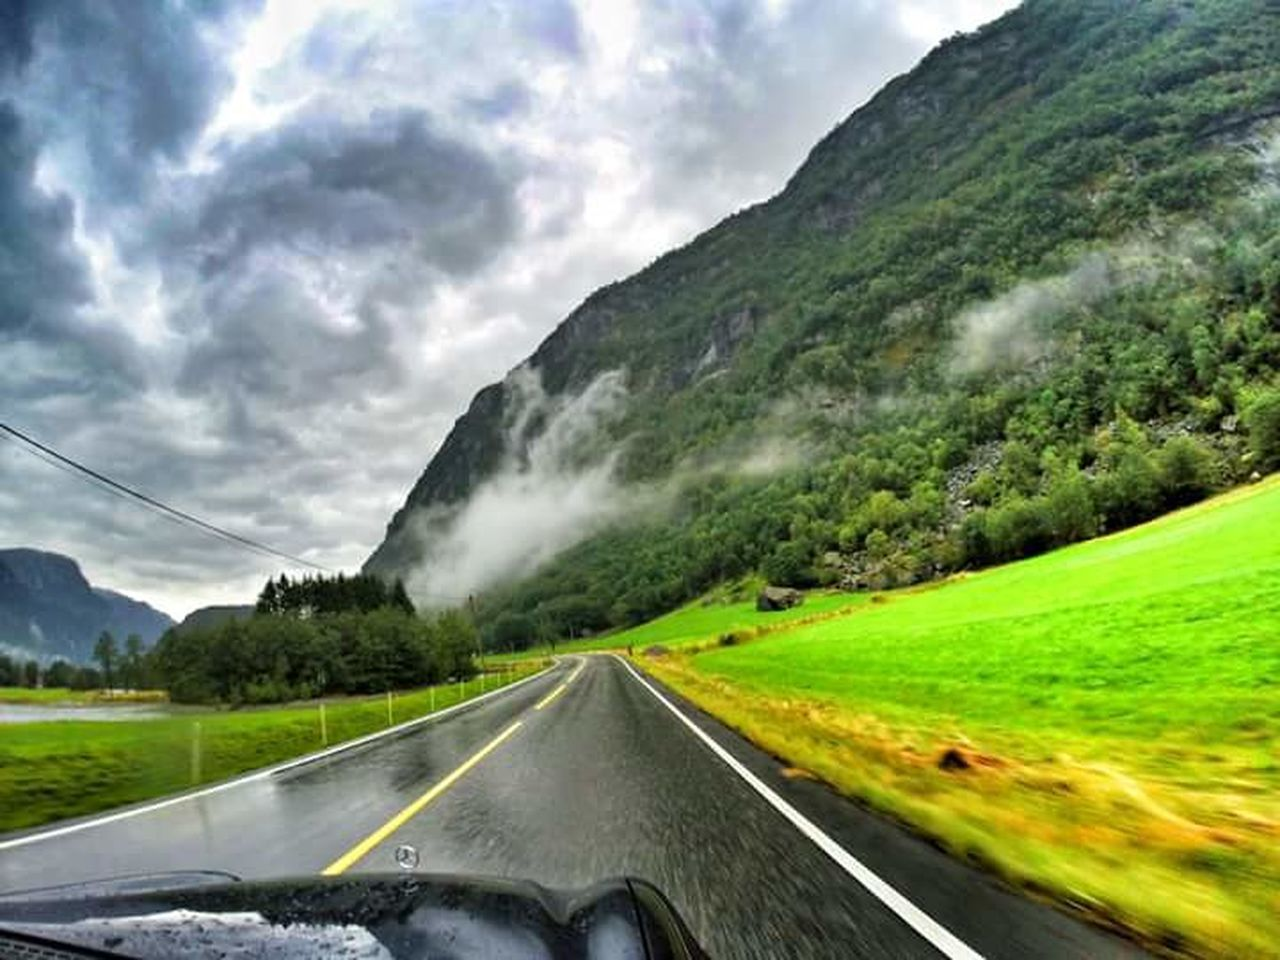 Hardanger Hardangerfjorden Hardangervidda Hardangervegen Odda Norway Norge Landscape Road Outdoors NorwayTourism Goprophotography Aroundtheworld Travel Photography Eyemphotography Goprotravel Travel Destinations Follow4follow Beauty In Nature Green Color Scenics Fjordsofnorway Roadsidephotography Roadscenes Norwaynature